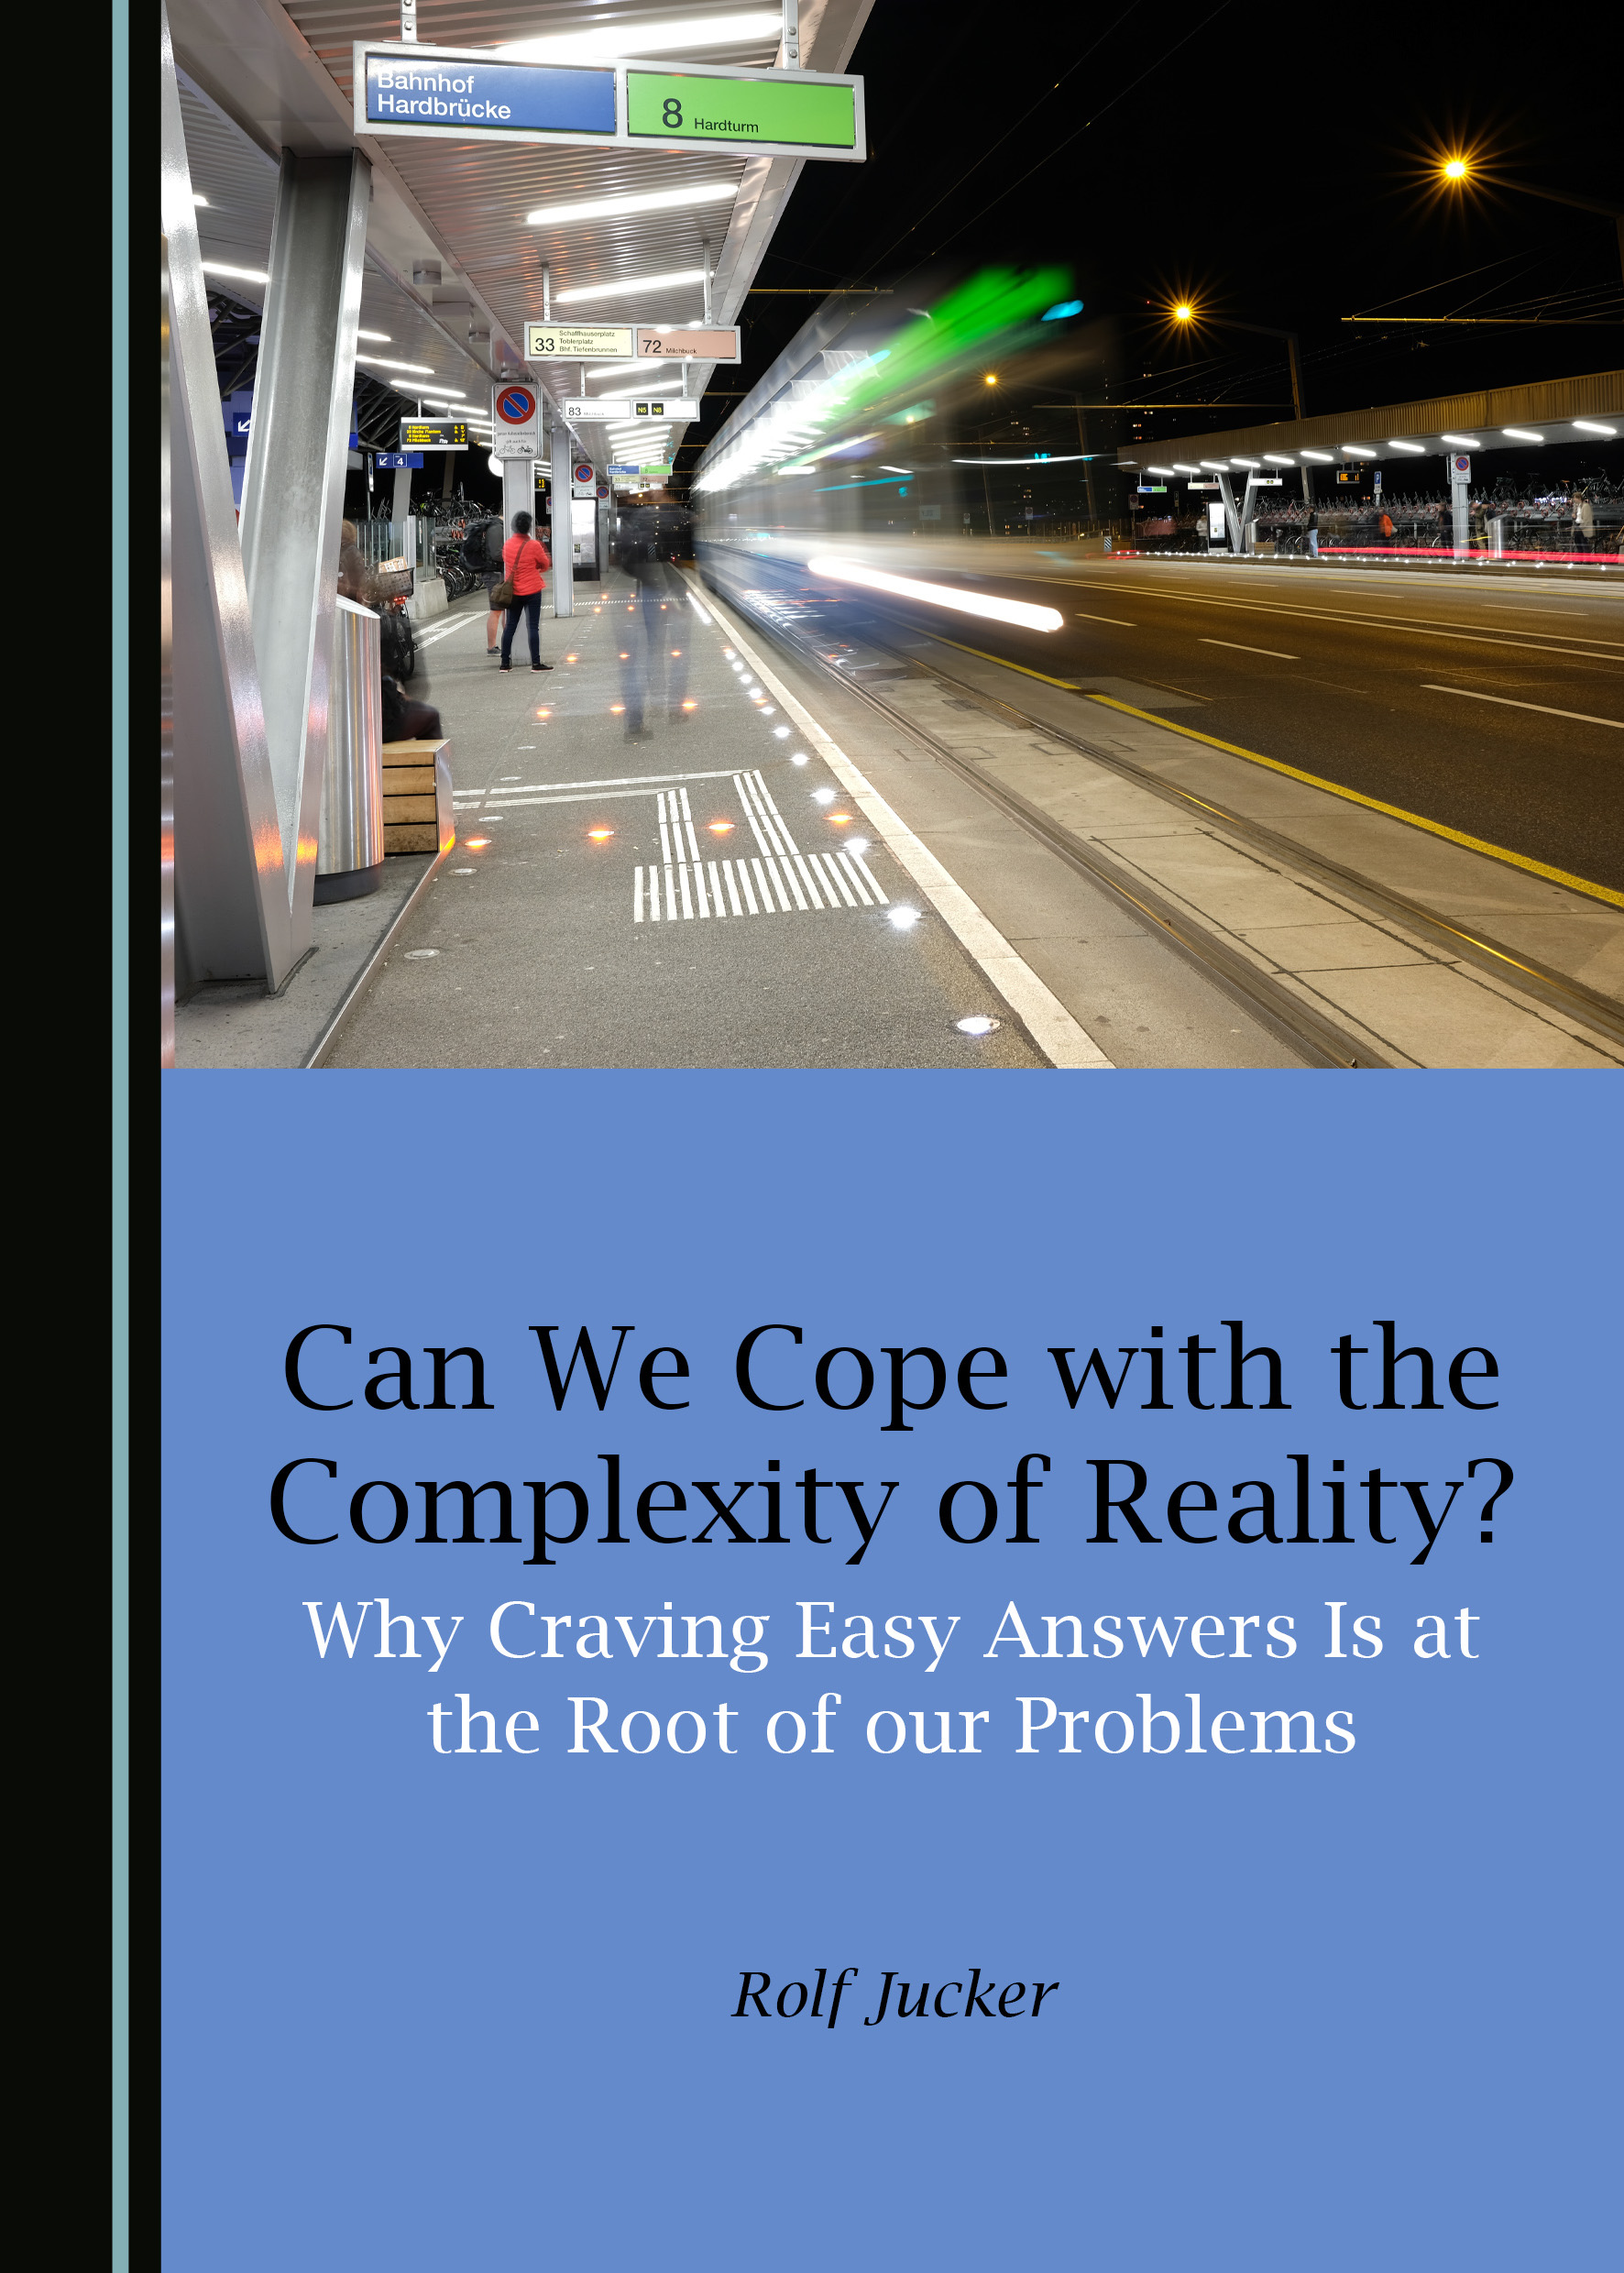 Can We Cope with the Complexity of Reality? Why Craving Easy Answers Is at the Root of our Problems